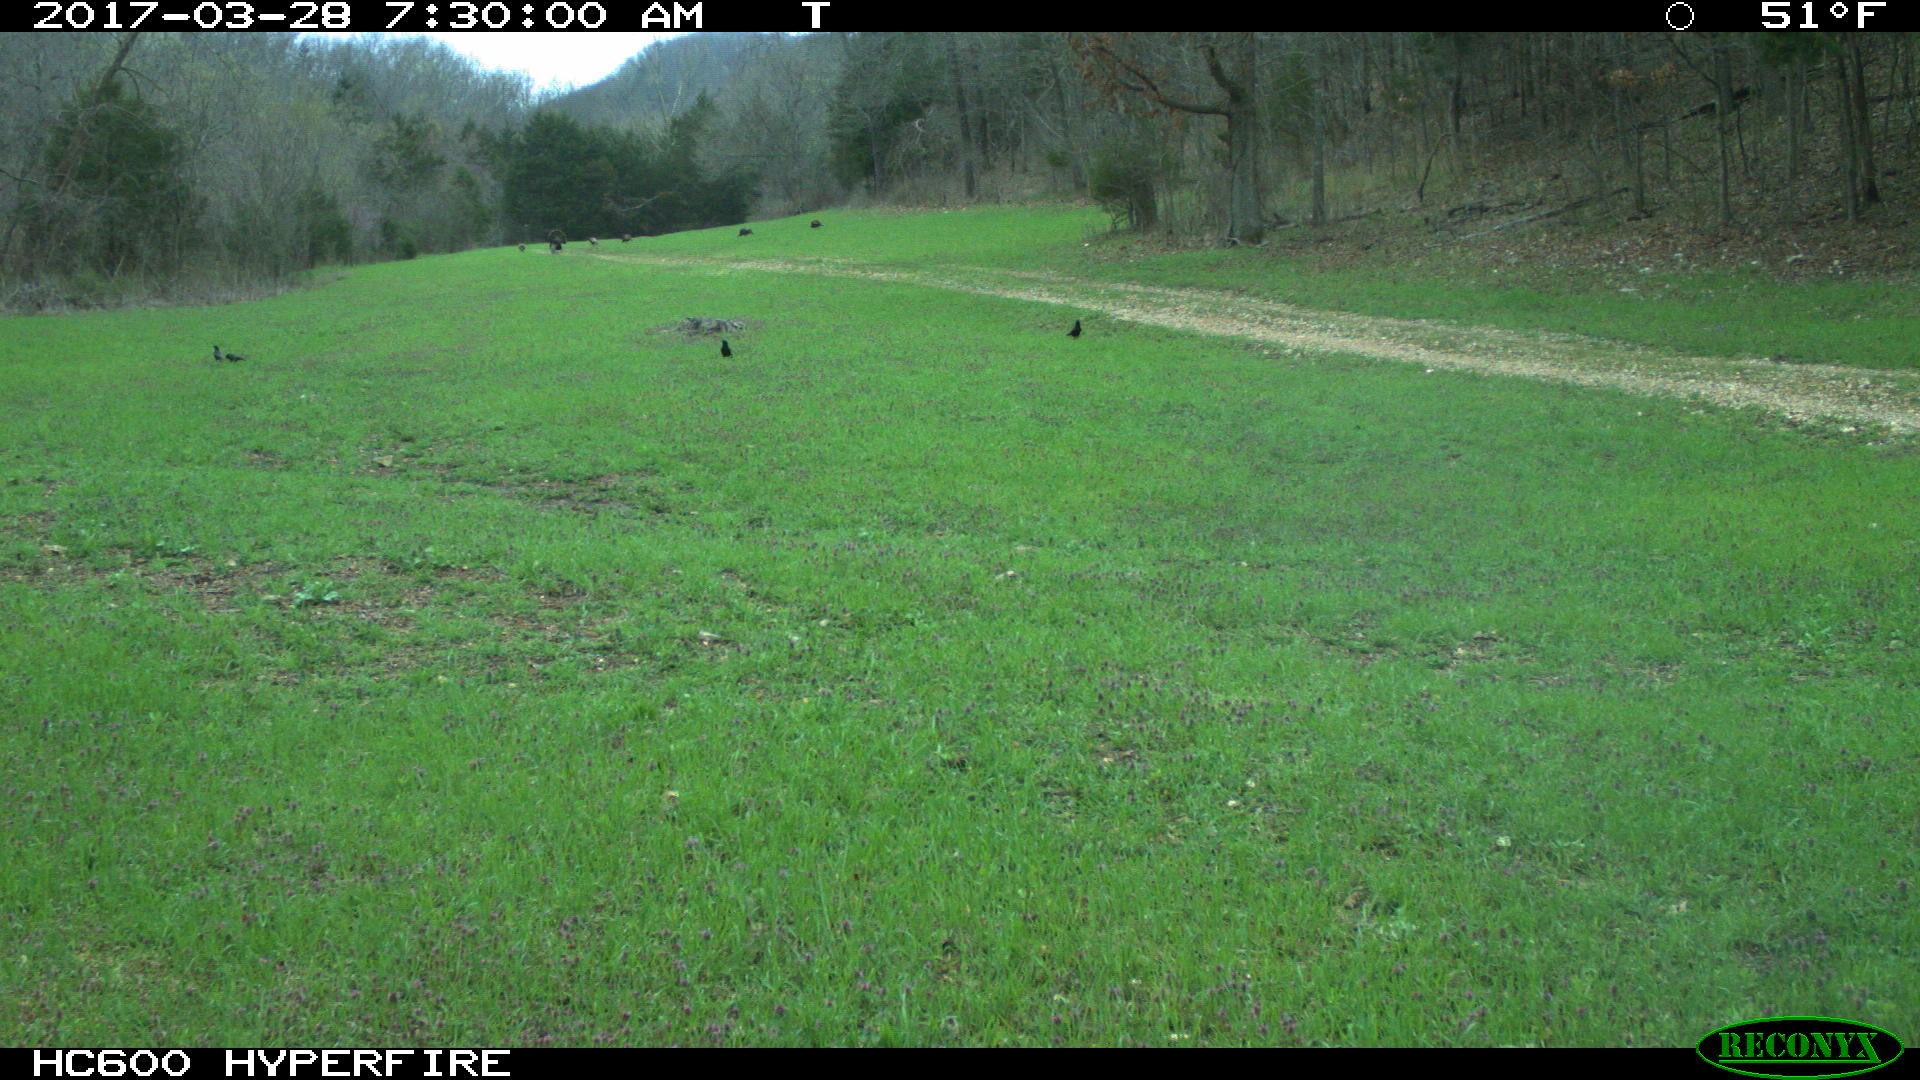 We use Reconyx cameras to scout for turkeys